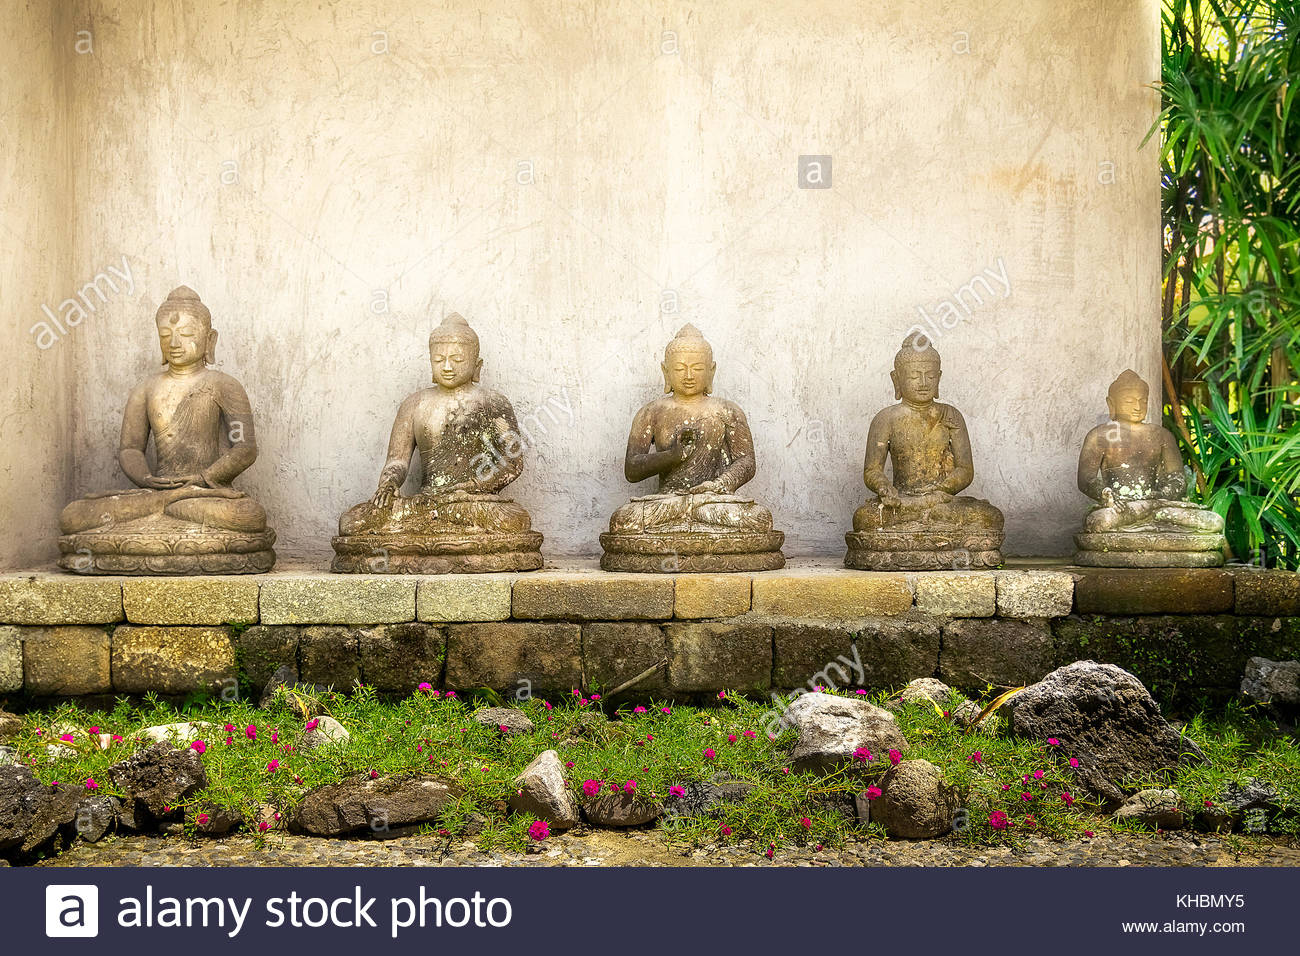 buddha figure at borobudur stockfotos buddha figure at borobudur bilder alamy. Black Bedroom Furniture Sets. Home Design Ideas